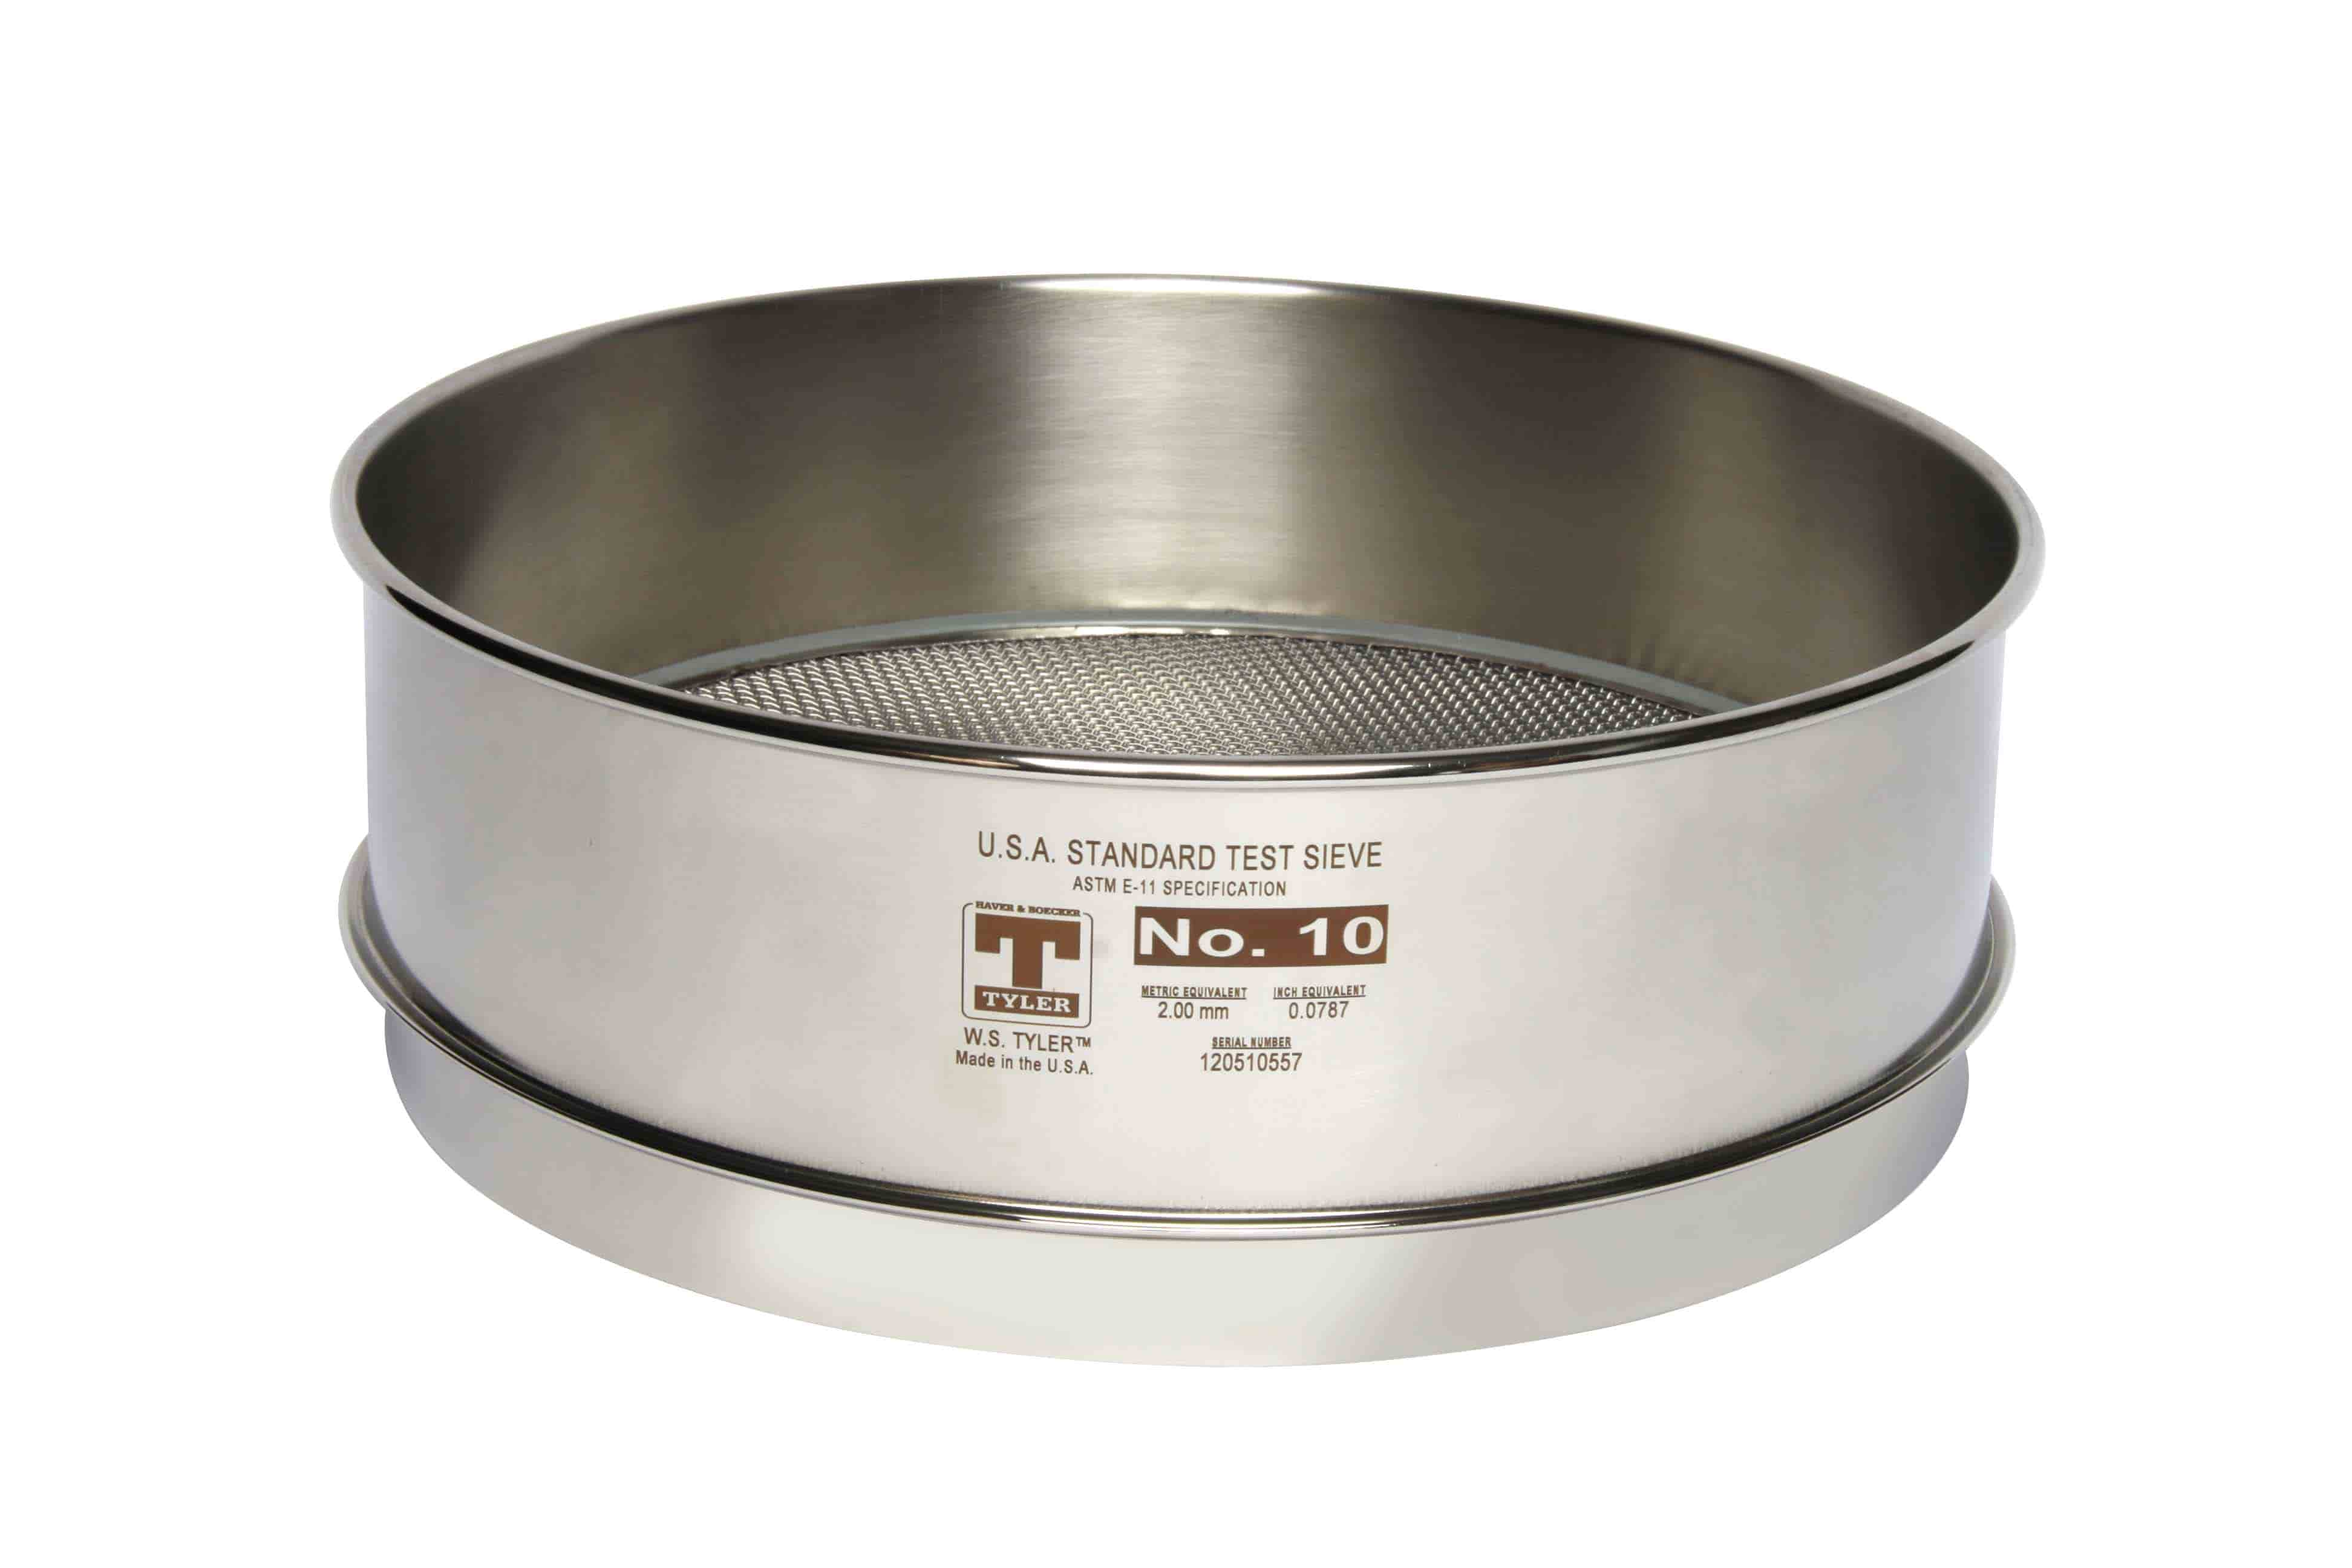 How Are Test Sieves Made? (Components, Process, Shipment)